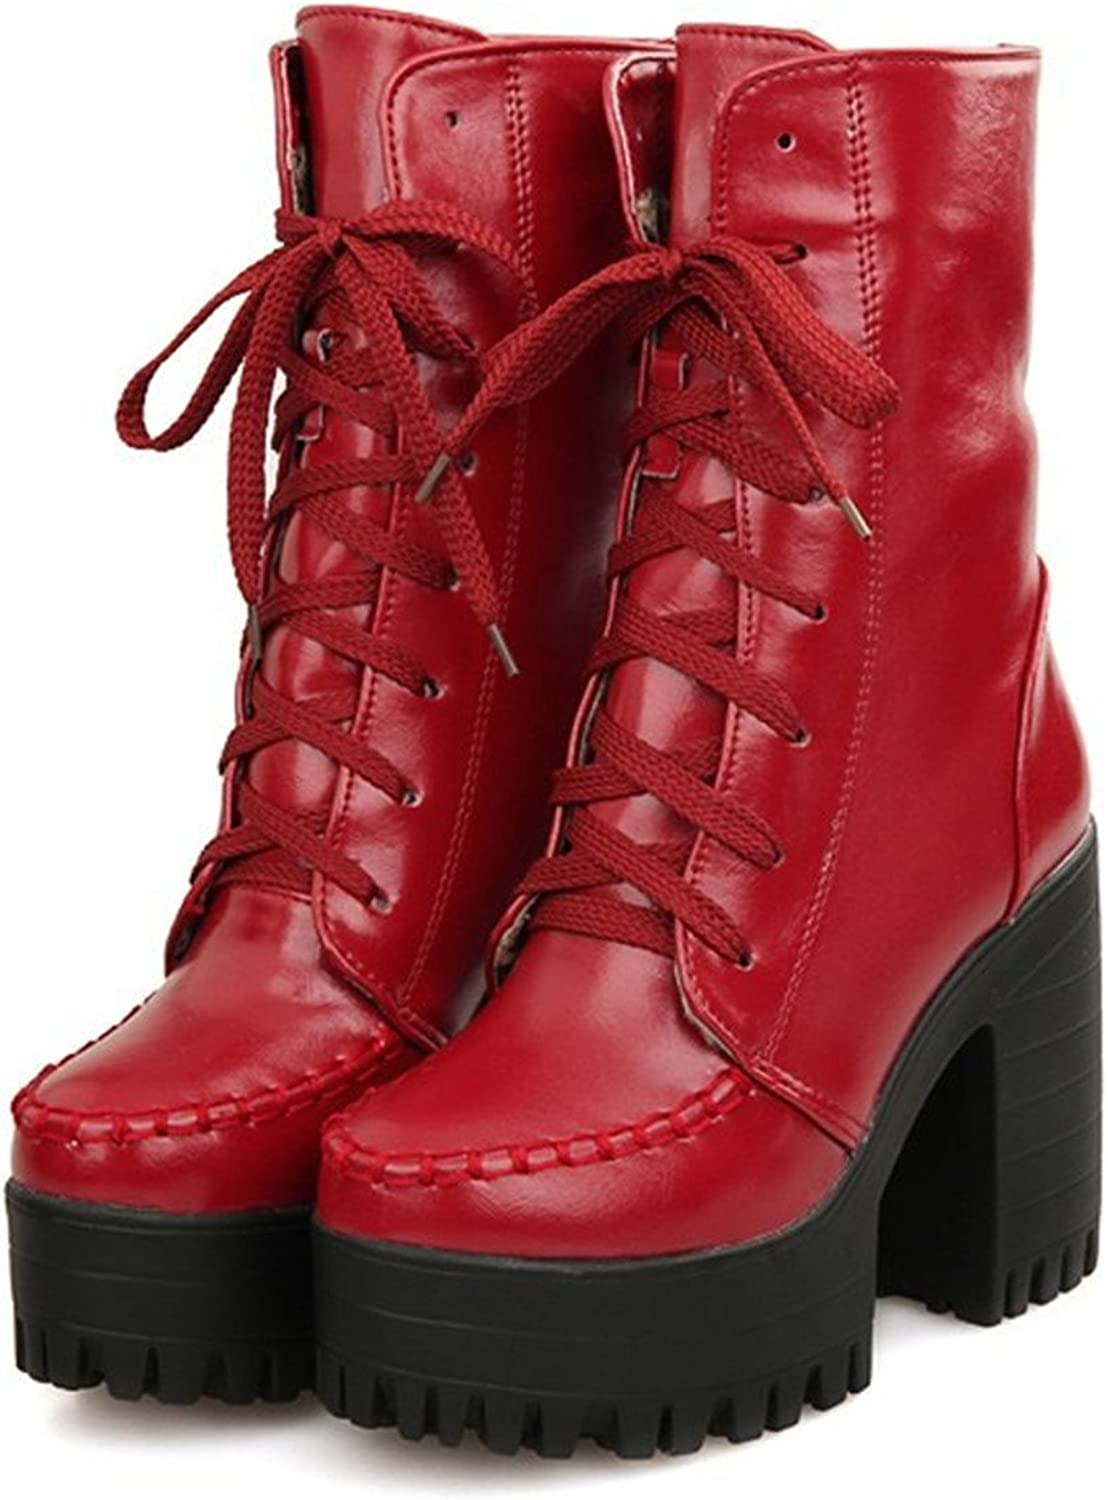 Dahanyi Breathable Womens Round Toe Lace Up Platform High Chunky Heels Mid-Calf Casual Boots (M) US Red Fashion